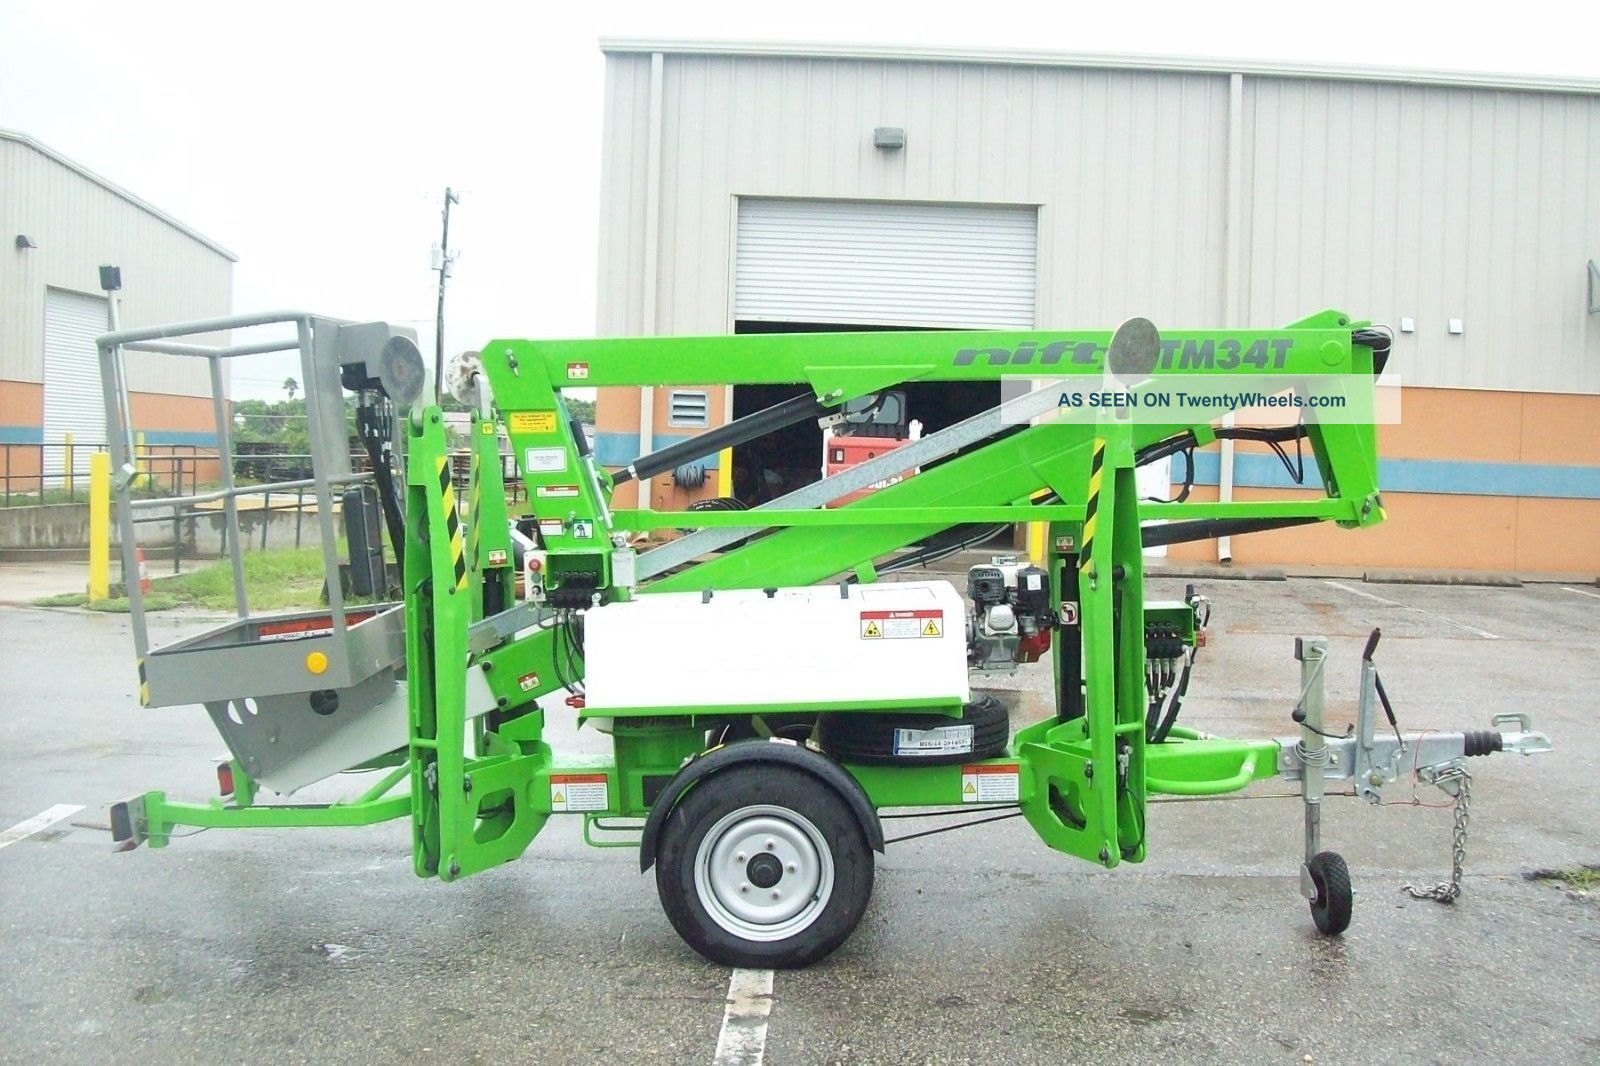 Nifty Tm34t 40 ' Boom Lift,  Hydraulic Outriggers,  20 ' Outreach,  Battery Powered,  Insc Scissor & Boom Lifts photo